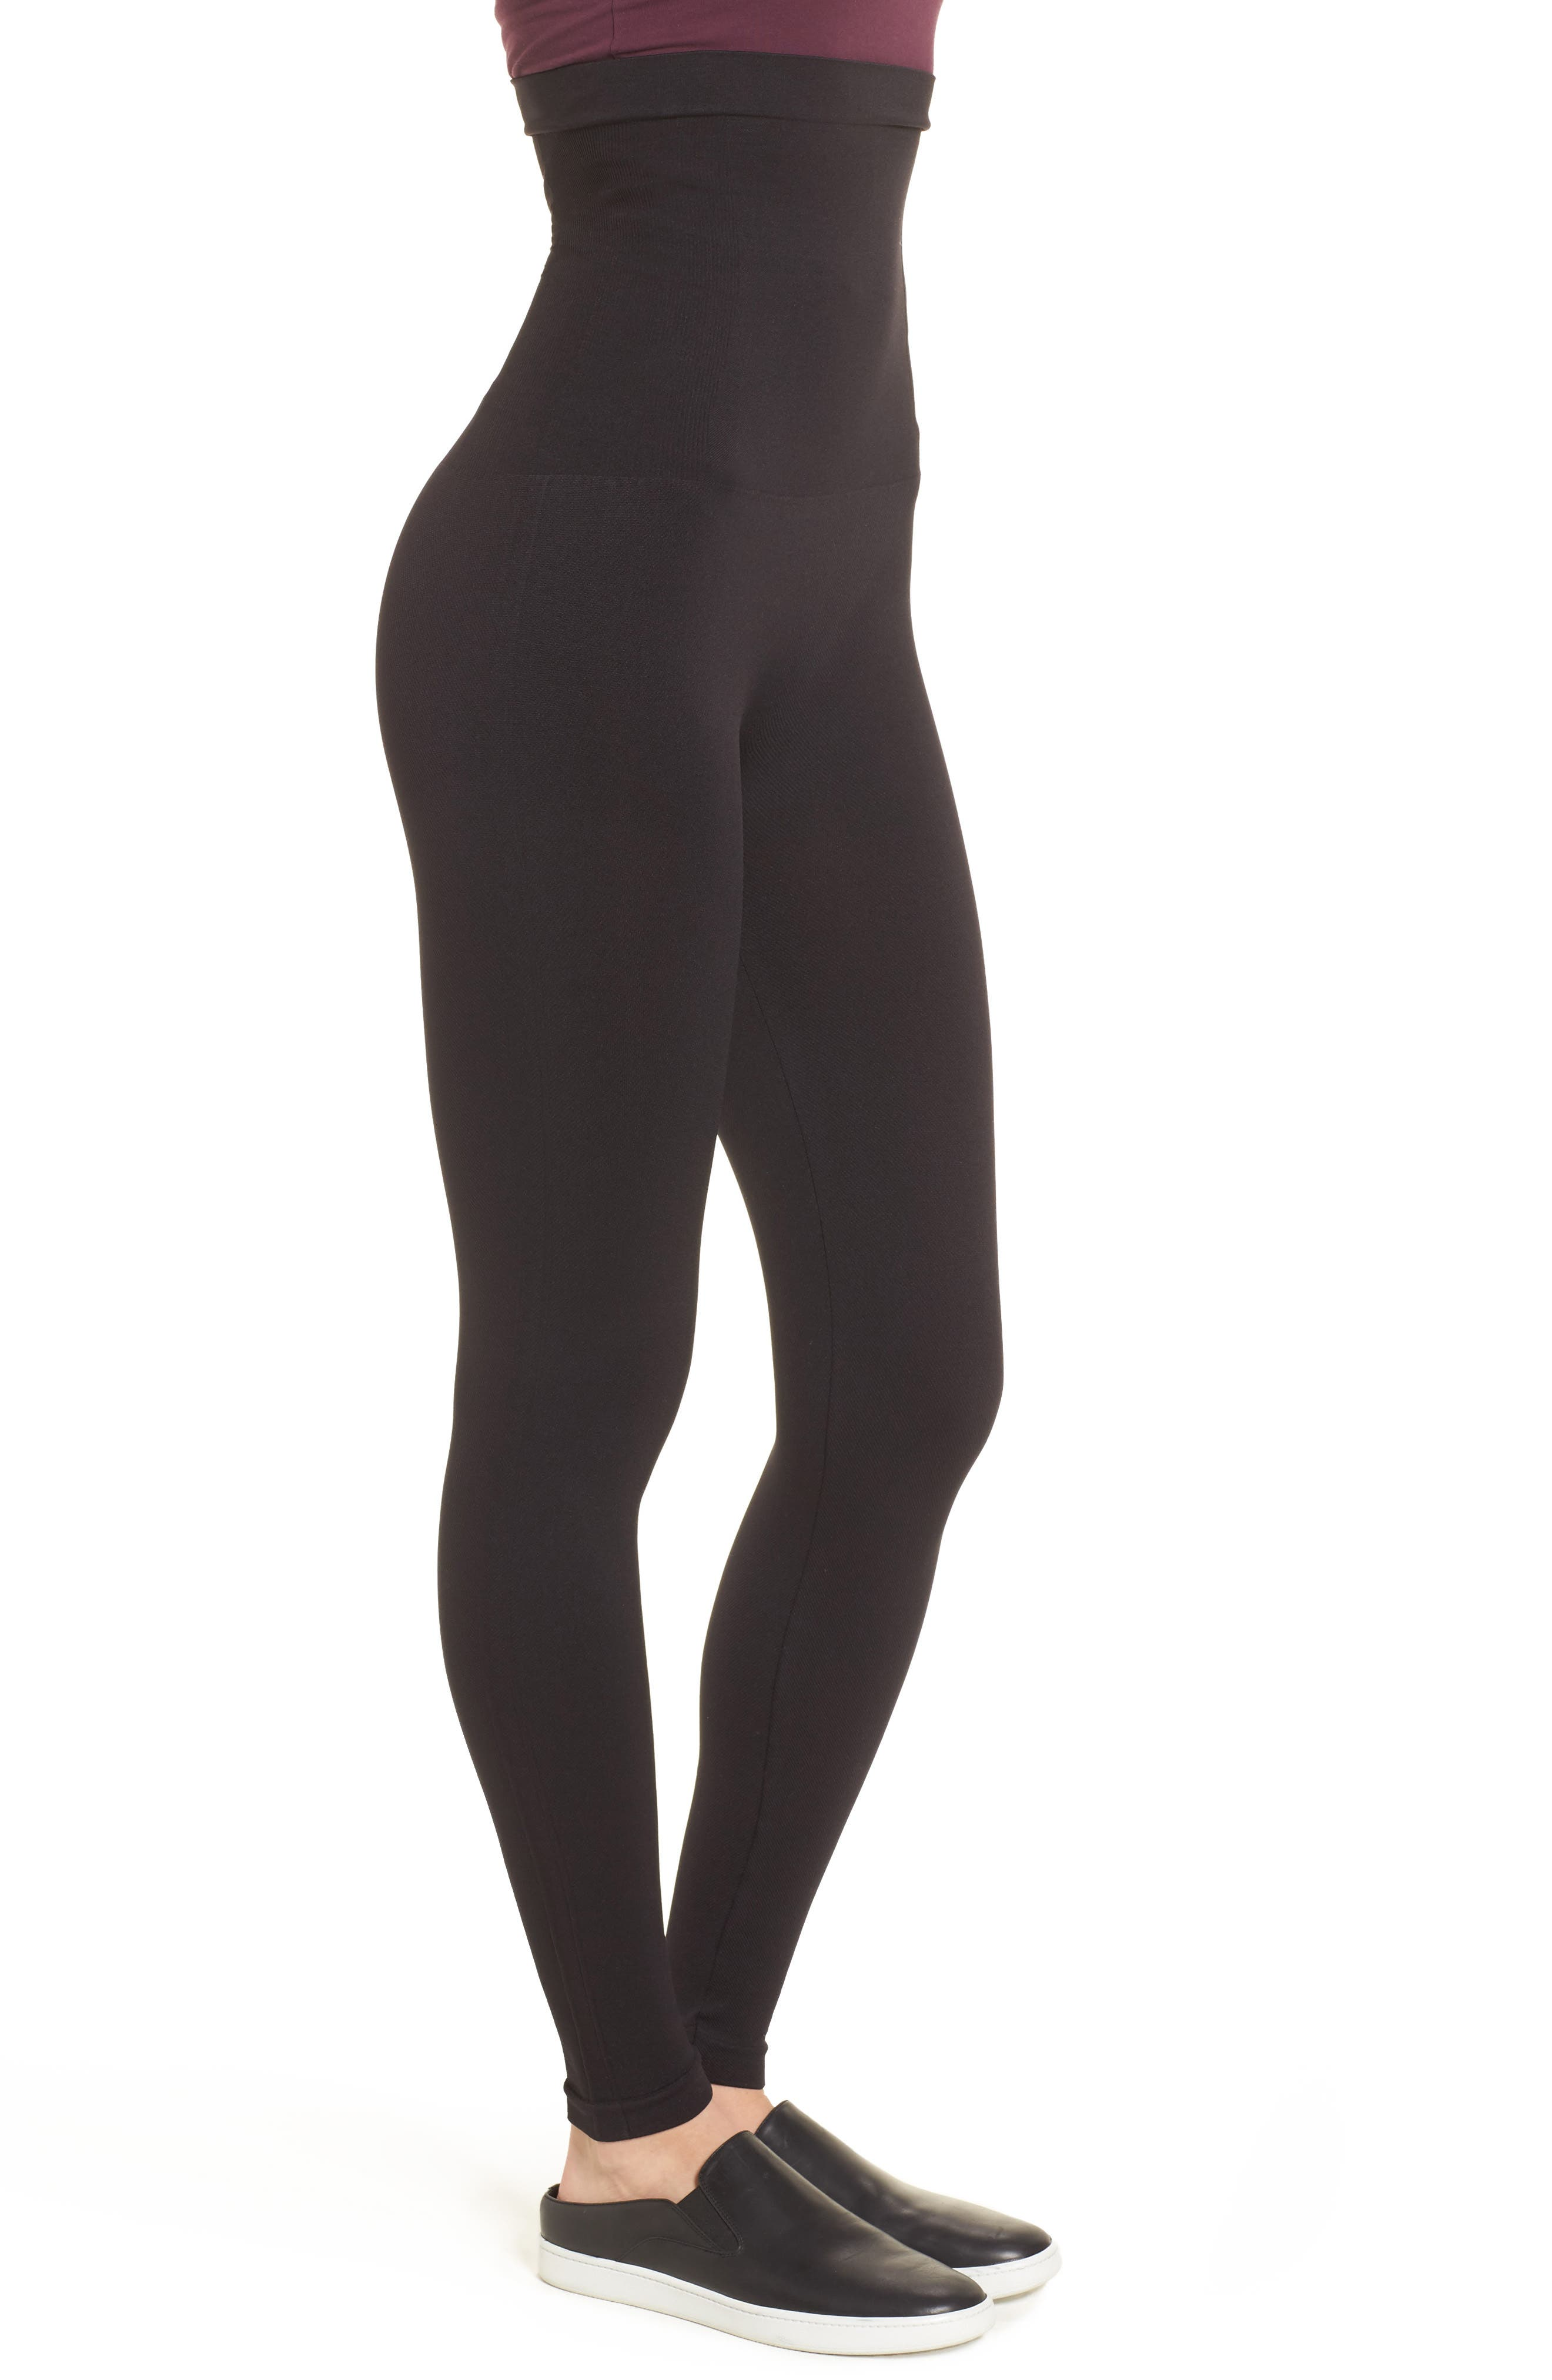 Look At Me Now High Waist Seamless Leggings,                             Alternate thumbnail 3, color,                             Very Black